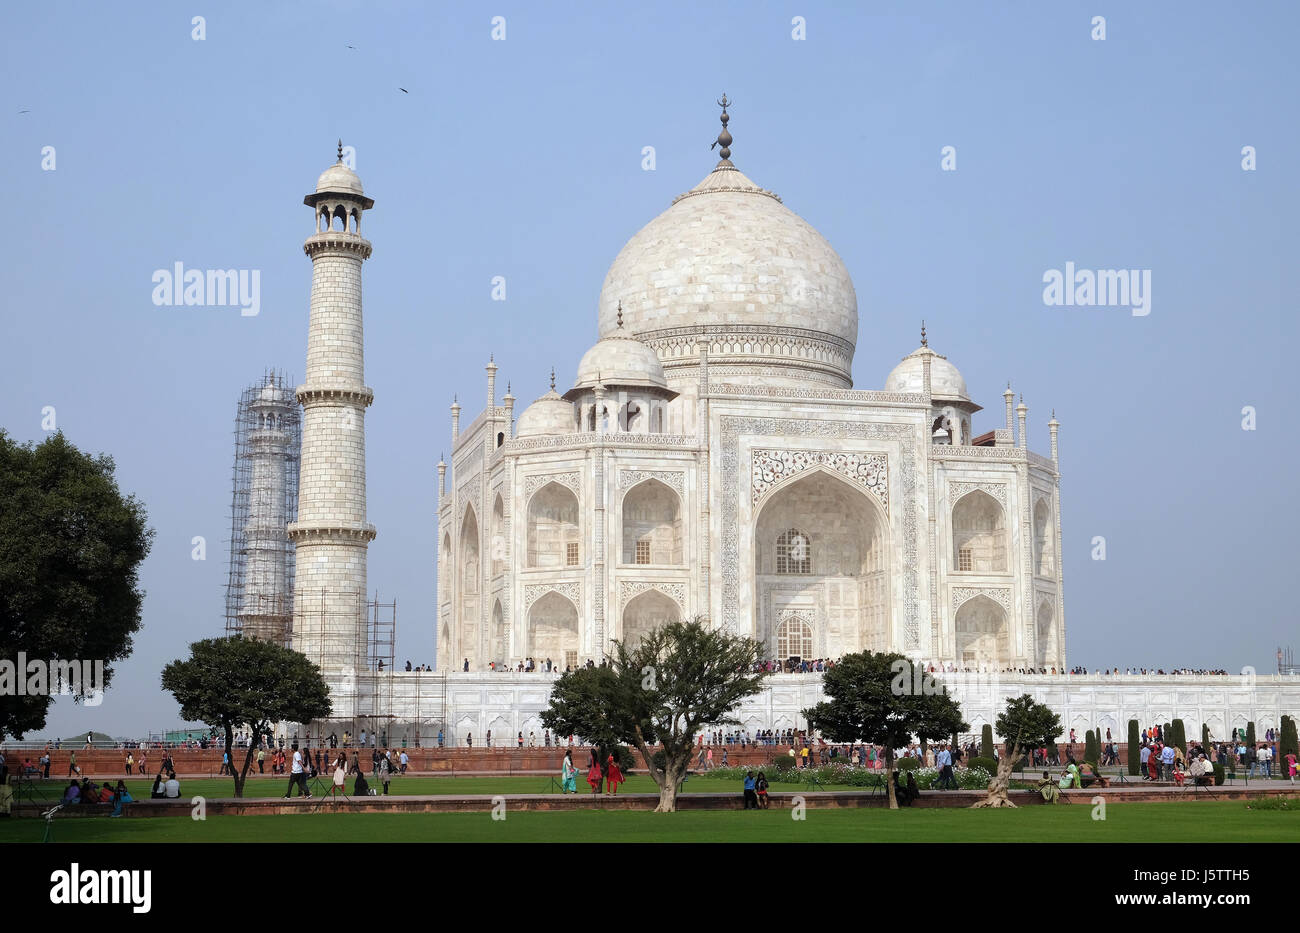 taj mahal marble cancer 2 causes marble cancer • marble is caco3 •when acids come in contact , these corrodes by chemical reaction share case study of taj mahal.